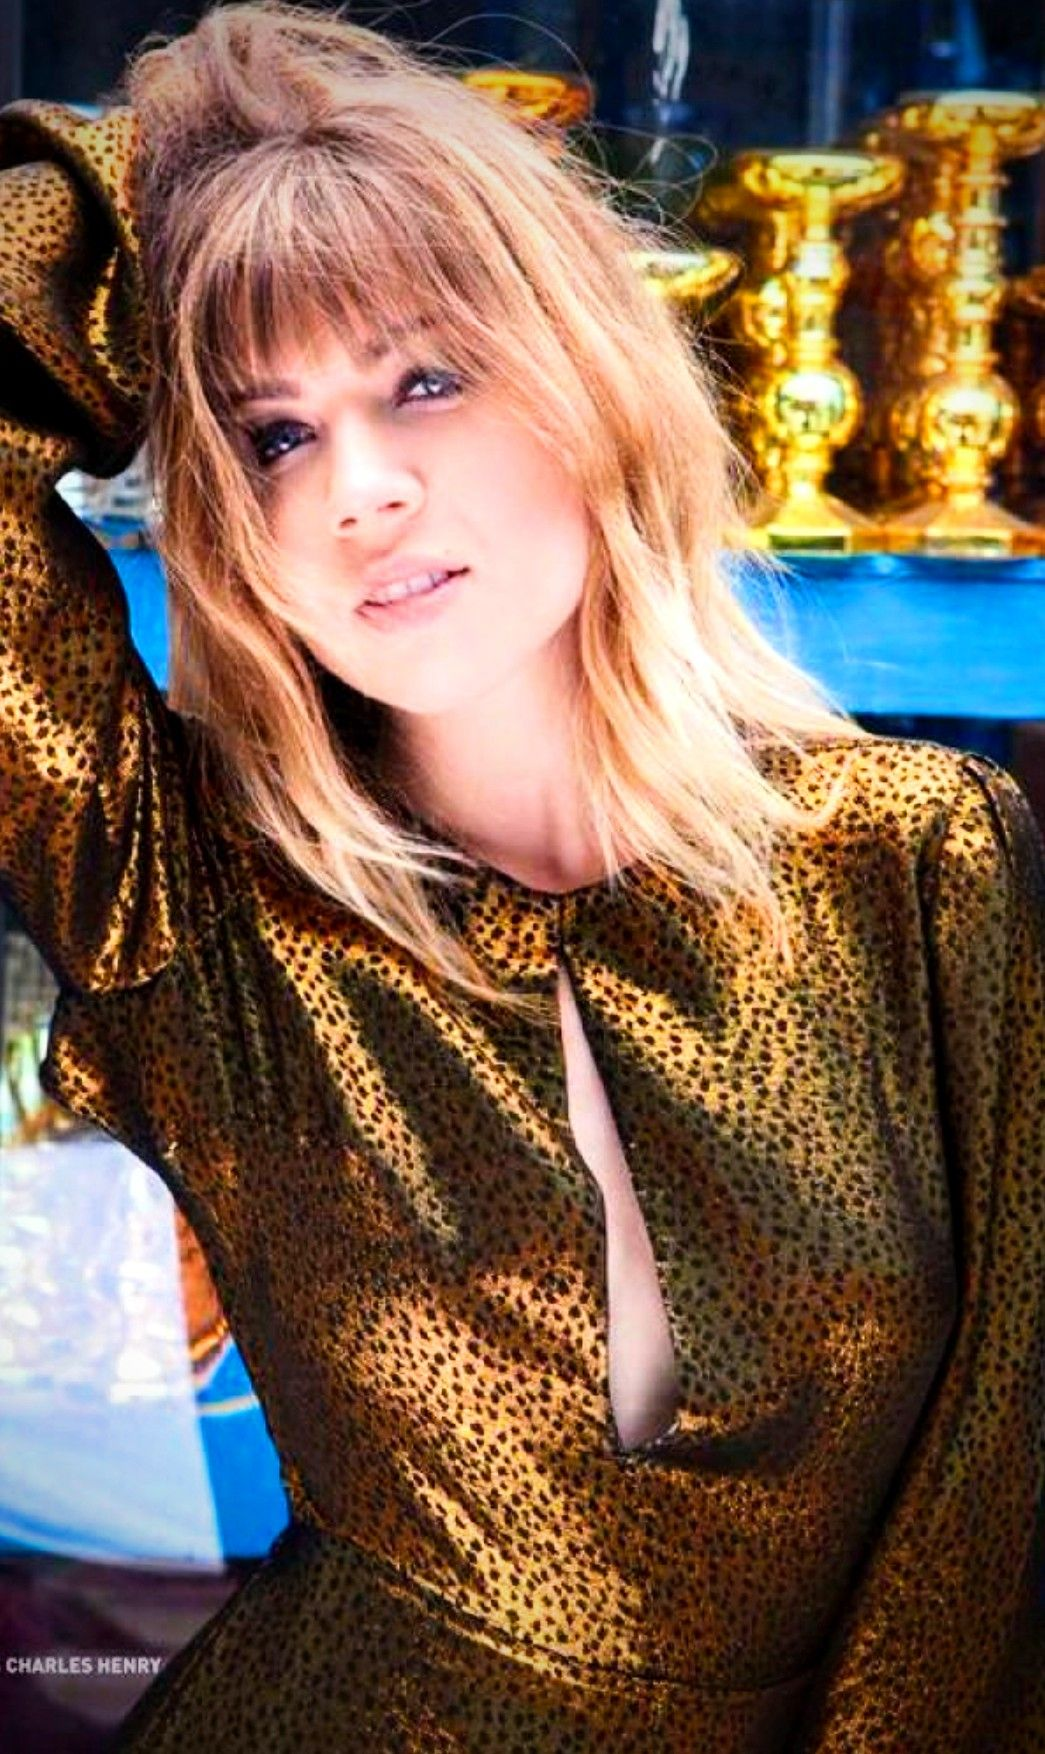 Pin By Carolina Ray On ジャネット マッカーディ Jeannette Mccurdy Jennette Mccurdy Celebrities Female